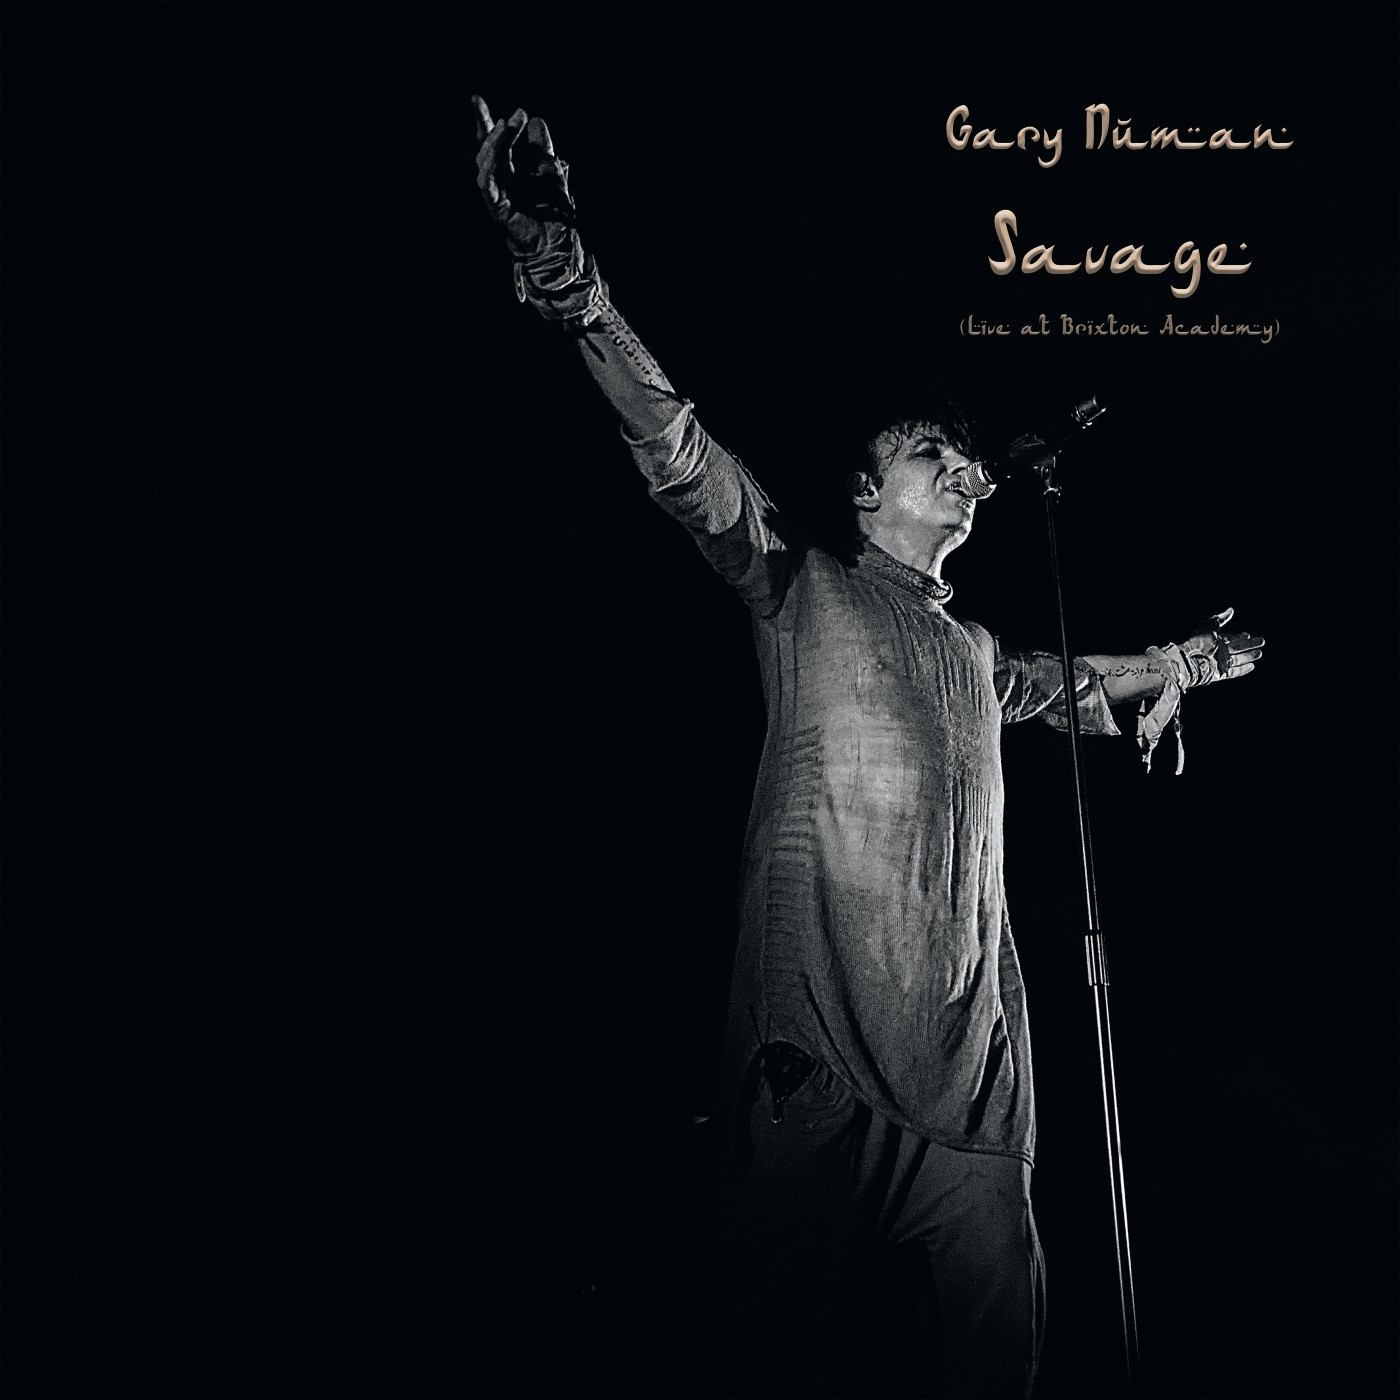 Gary Numan - Savage (Live At Brixton Academy) - 2CD+DVD